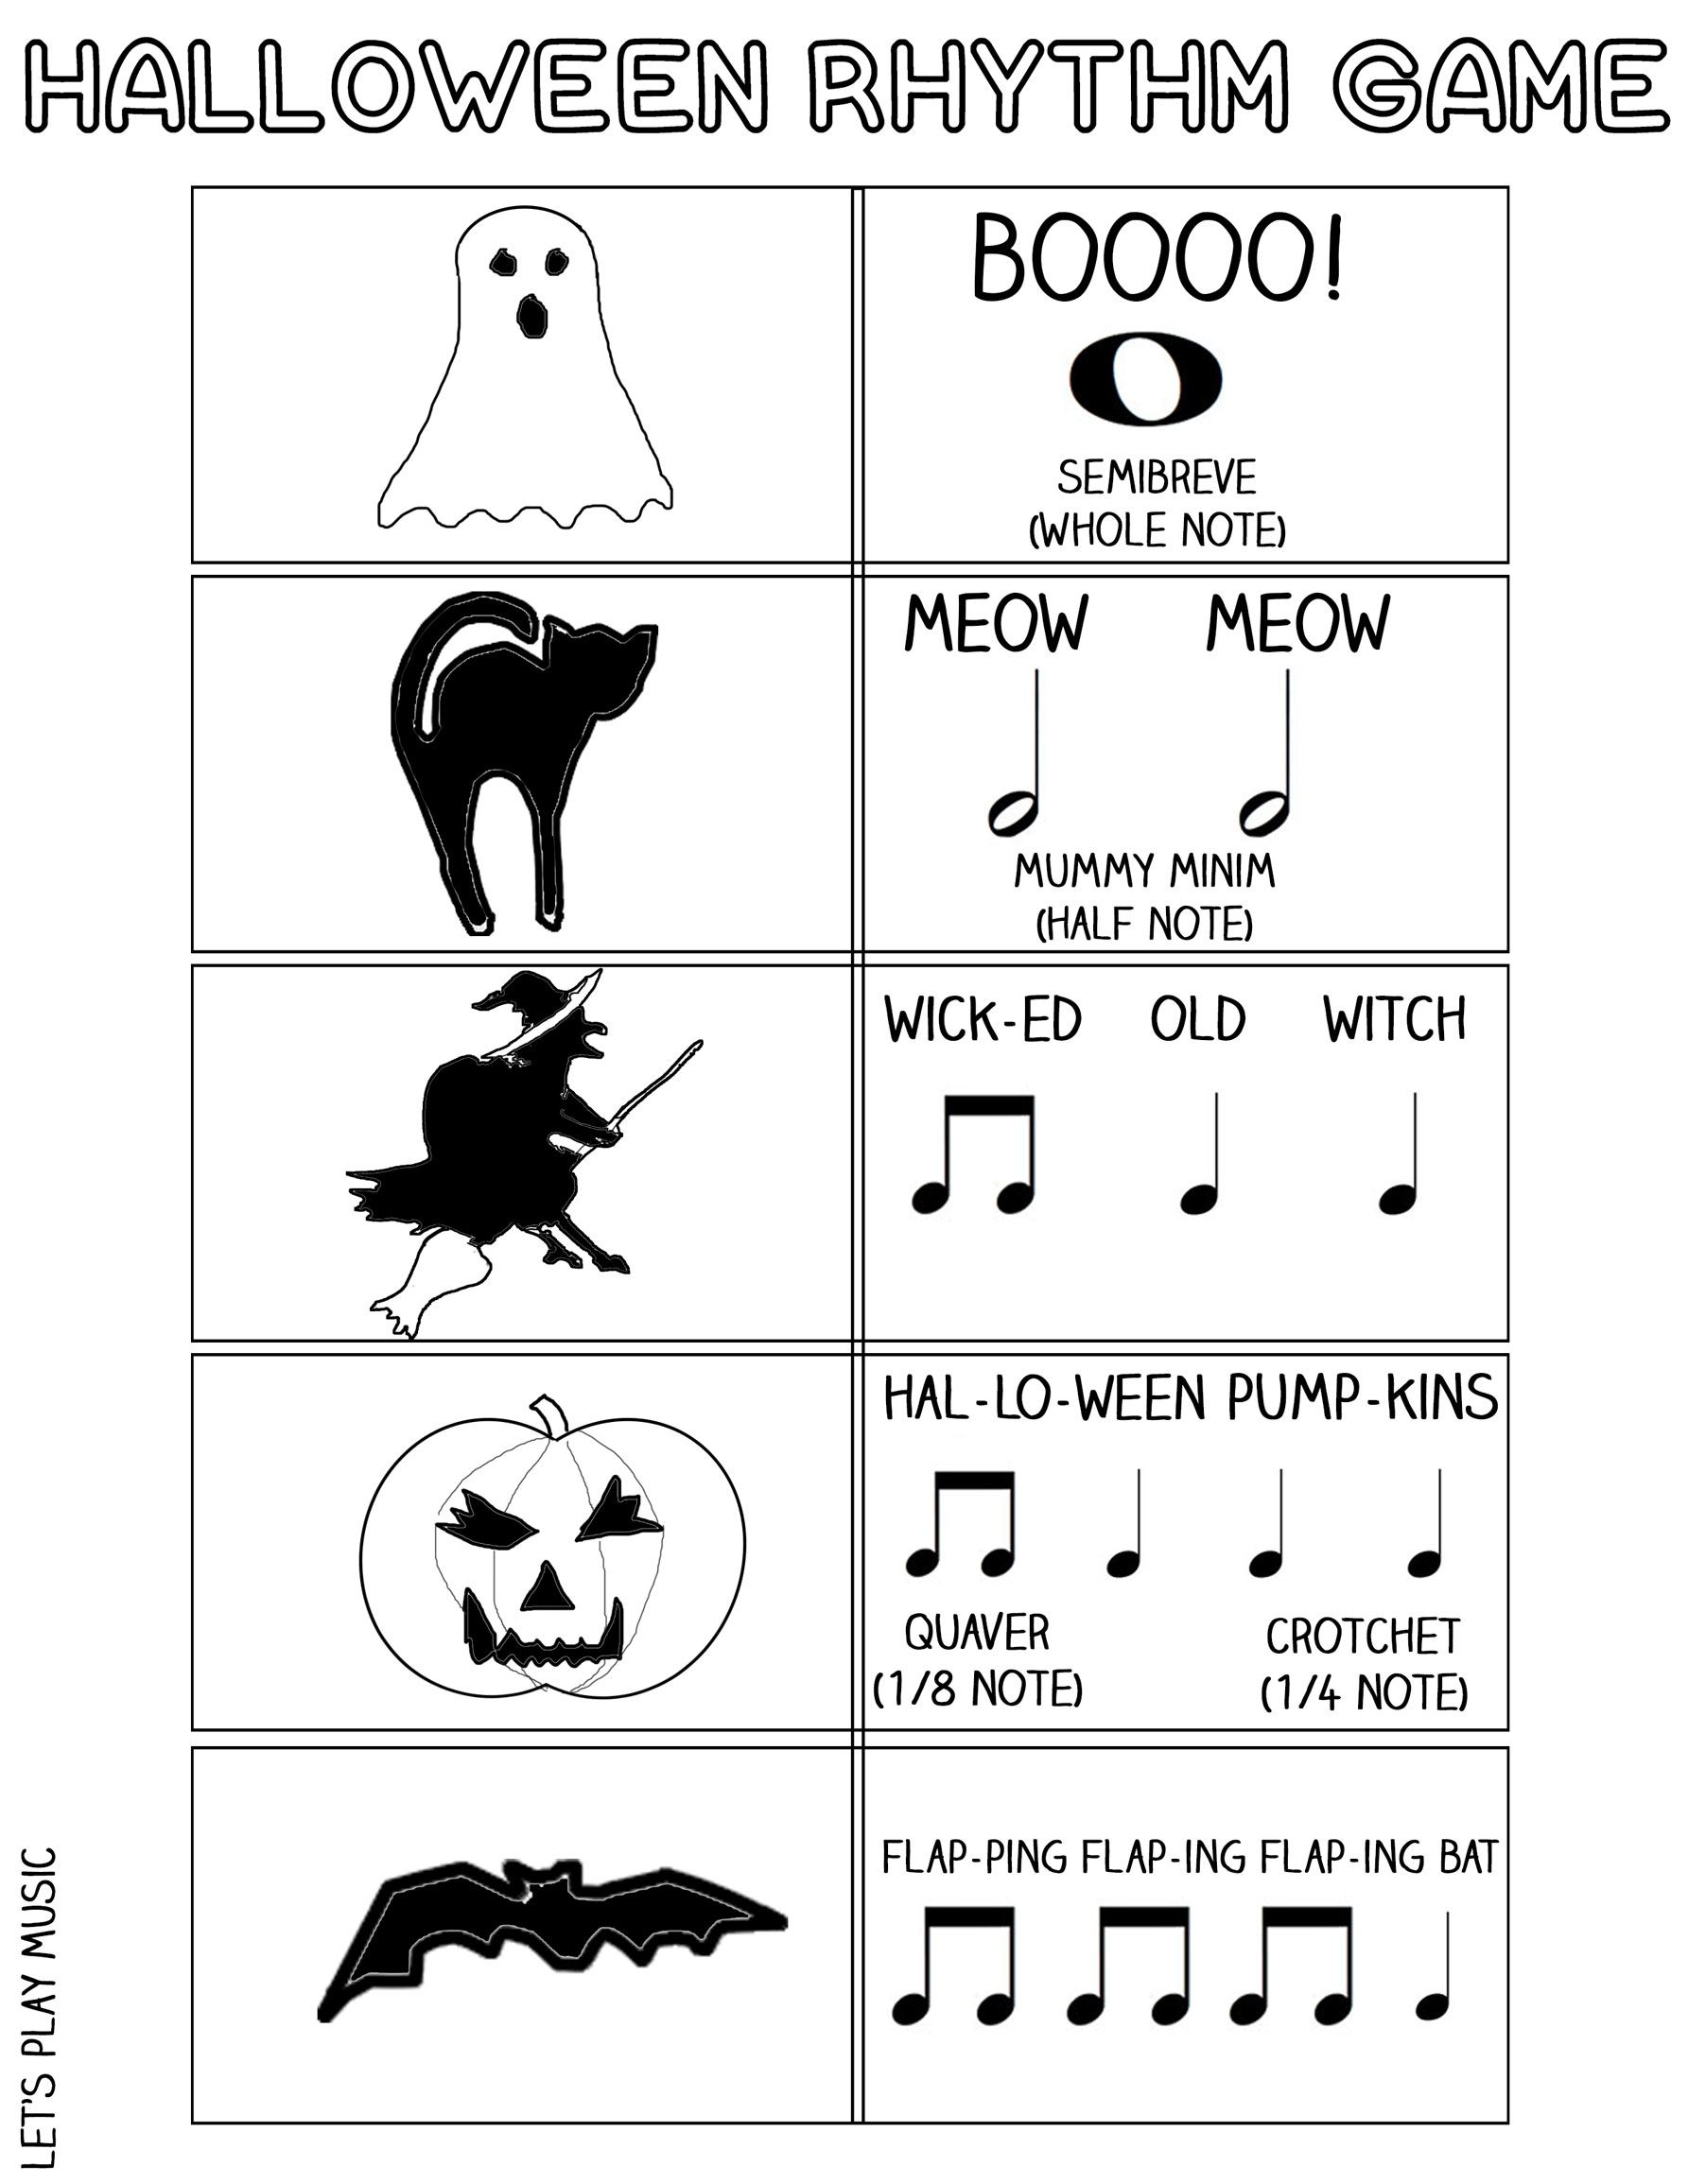 Halloween Is Coming : Halloween Songs For Kids - Let's Play